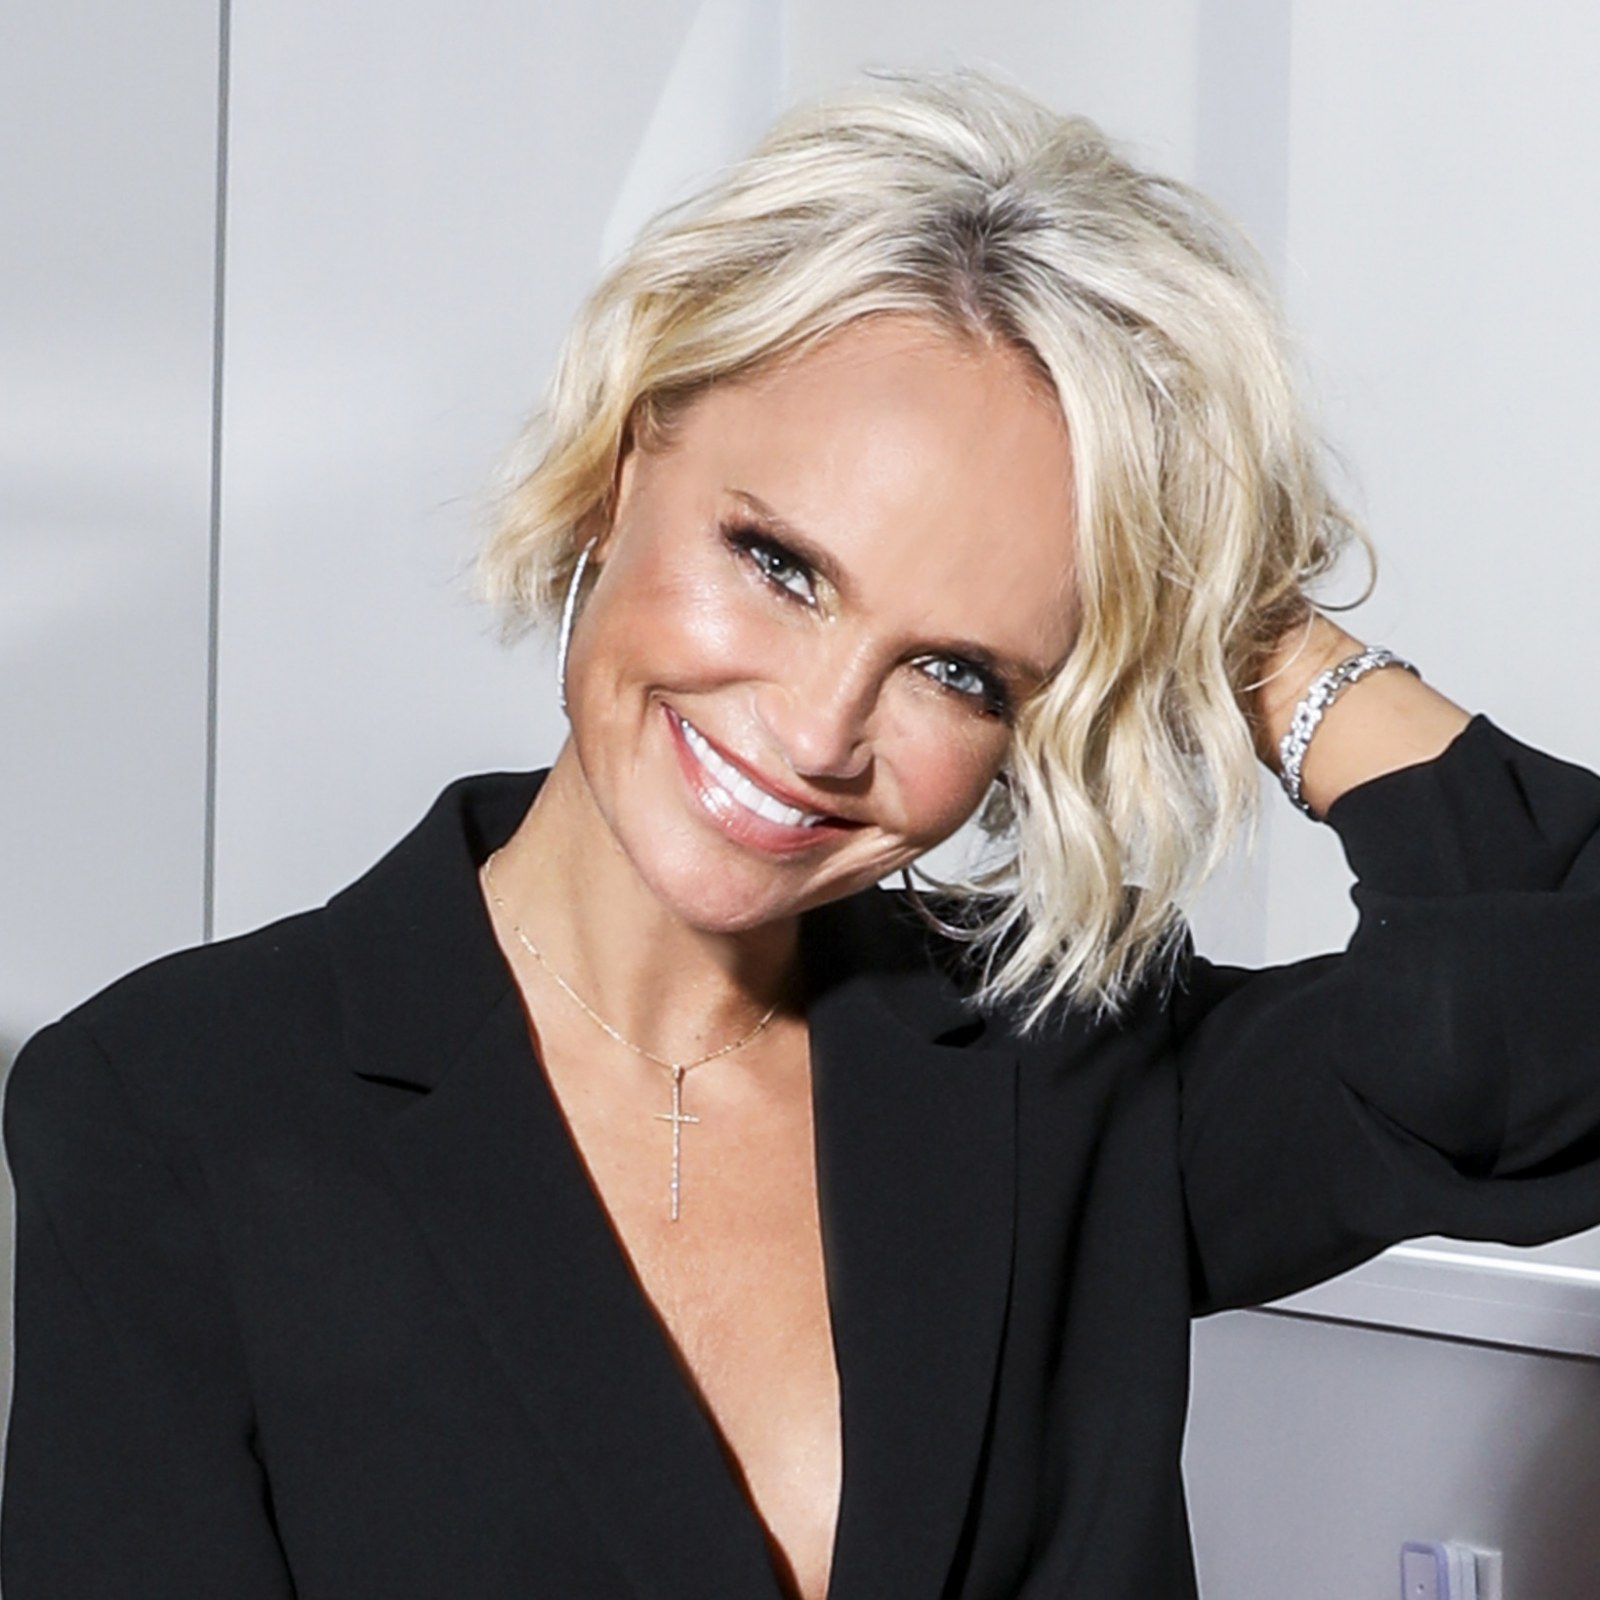 Kristin Chenoweth on 'The Witches' and Broadway's return post-COVID